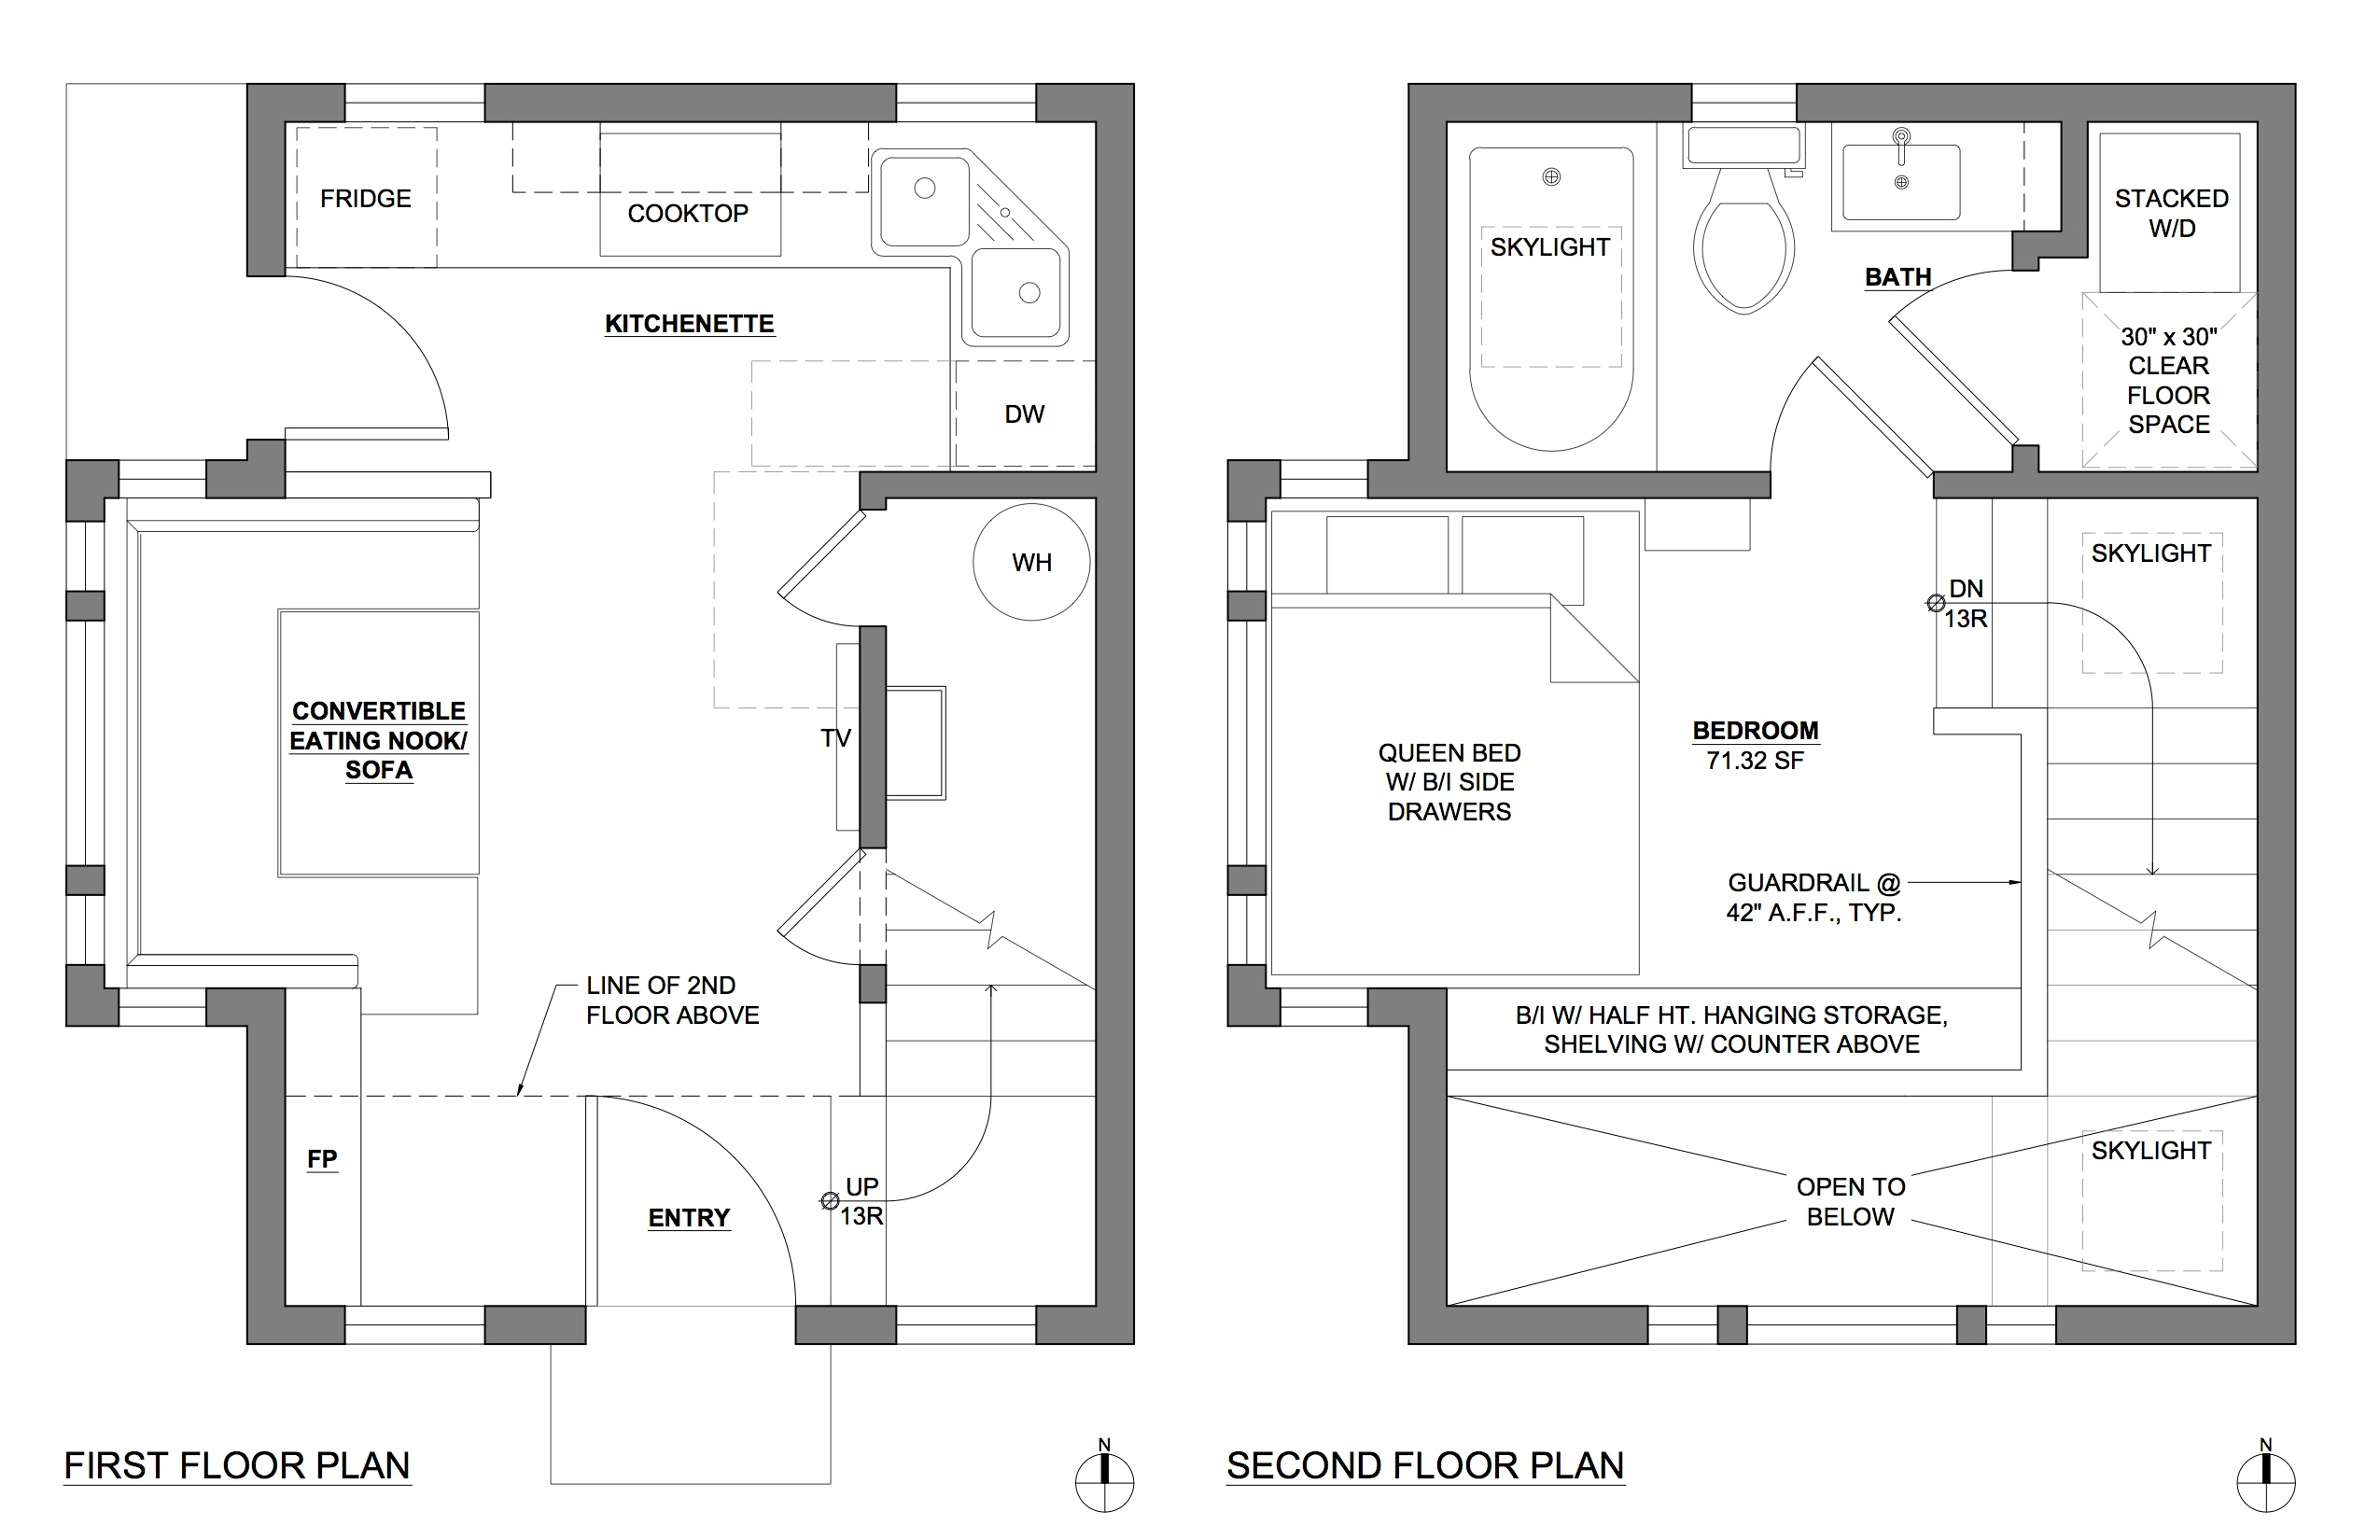 Dyer adu floor plan accessory dwellings for Accessory dwelling unit plans